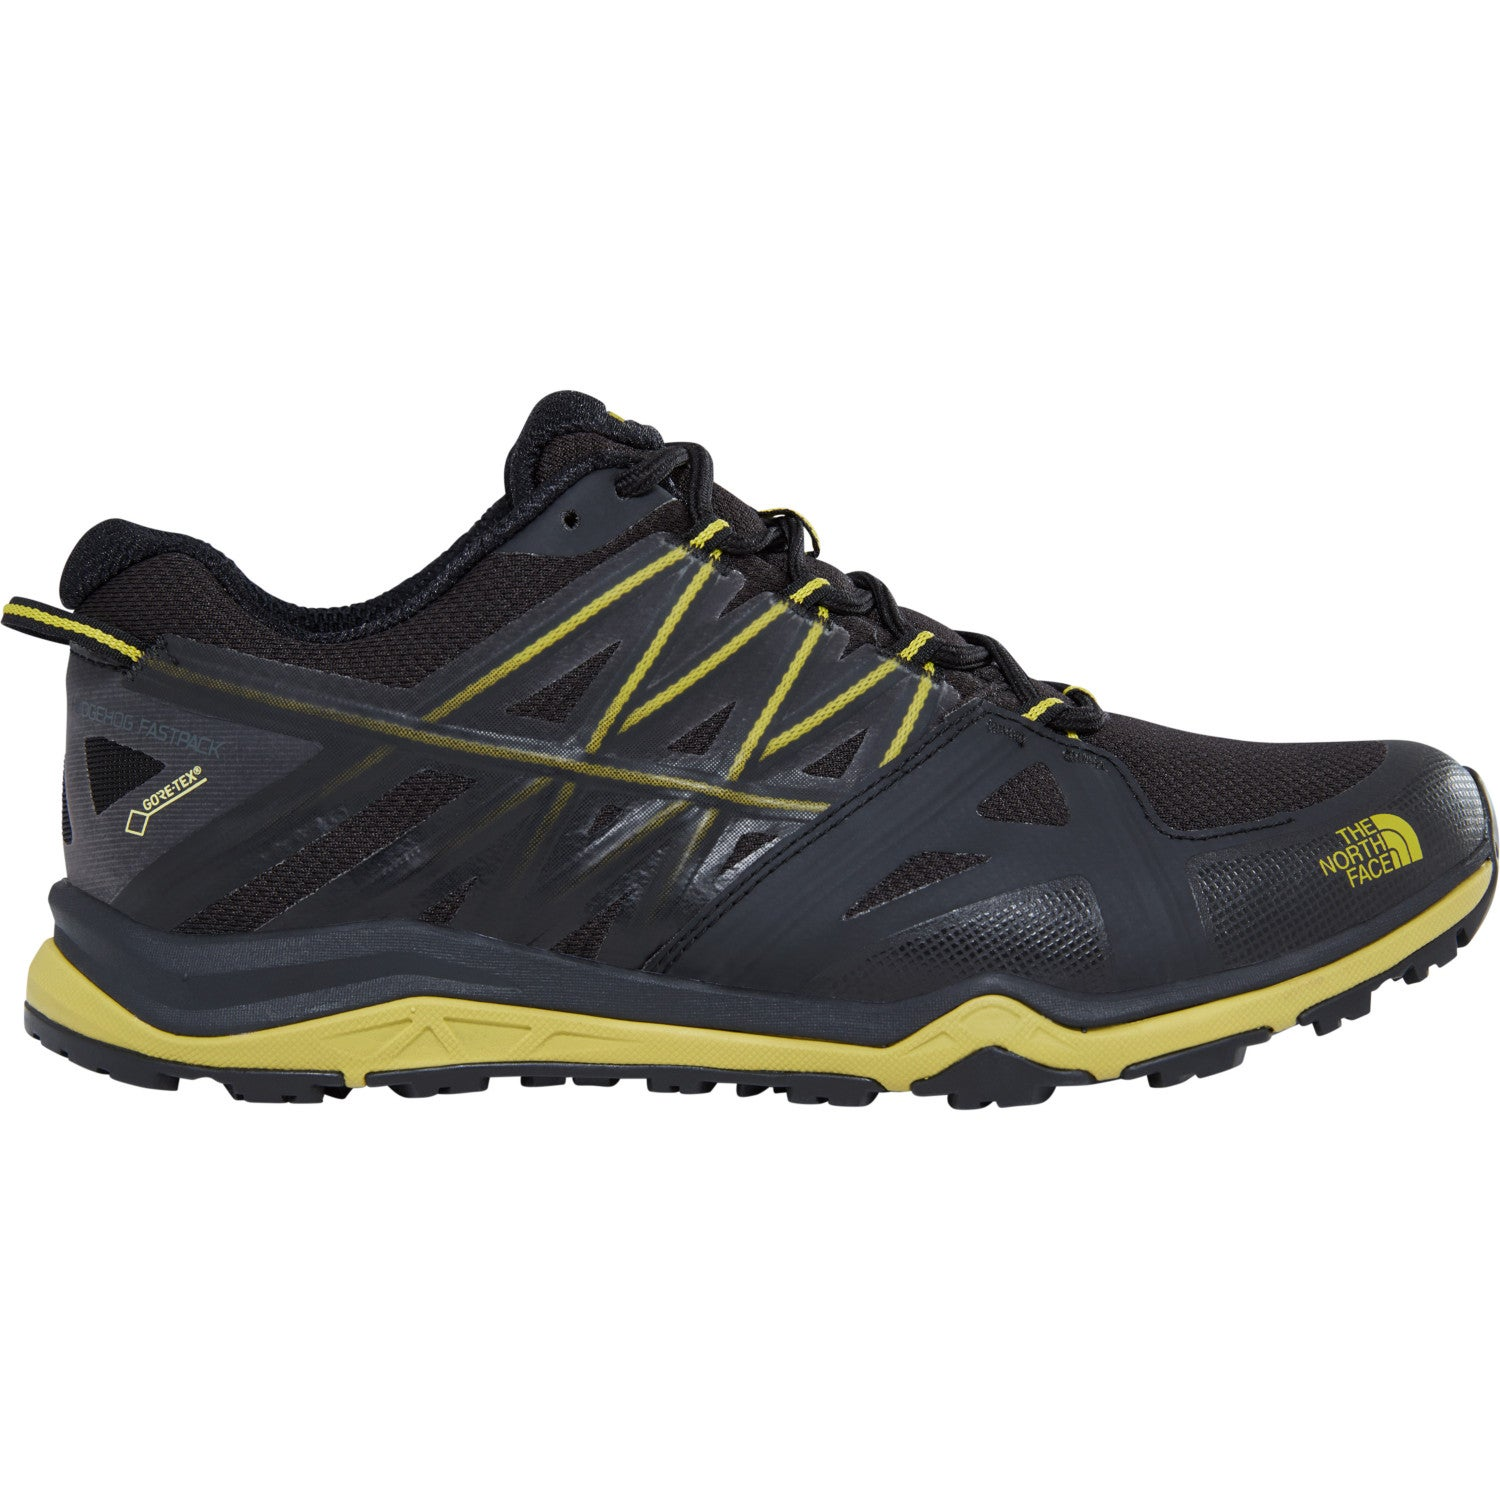 1d9a17f661c North Face Hedgehog Fastpack Lite Ii Gtx Mens Walking Shoes Black All Sizes